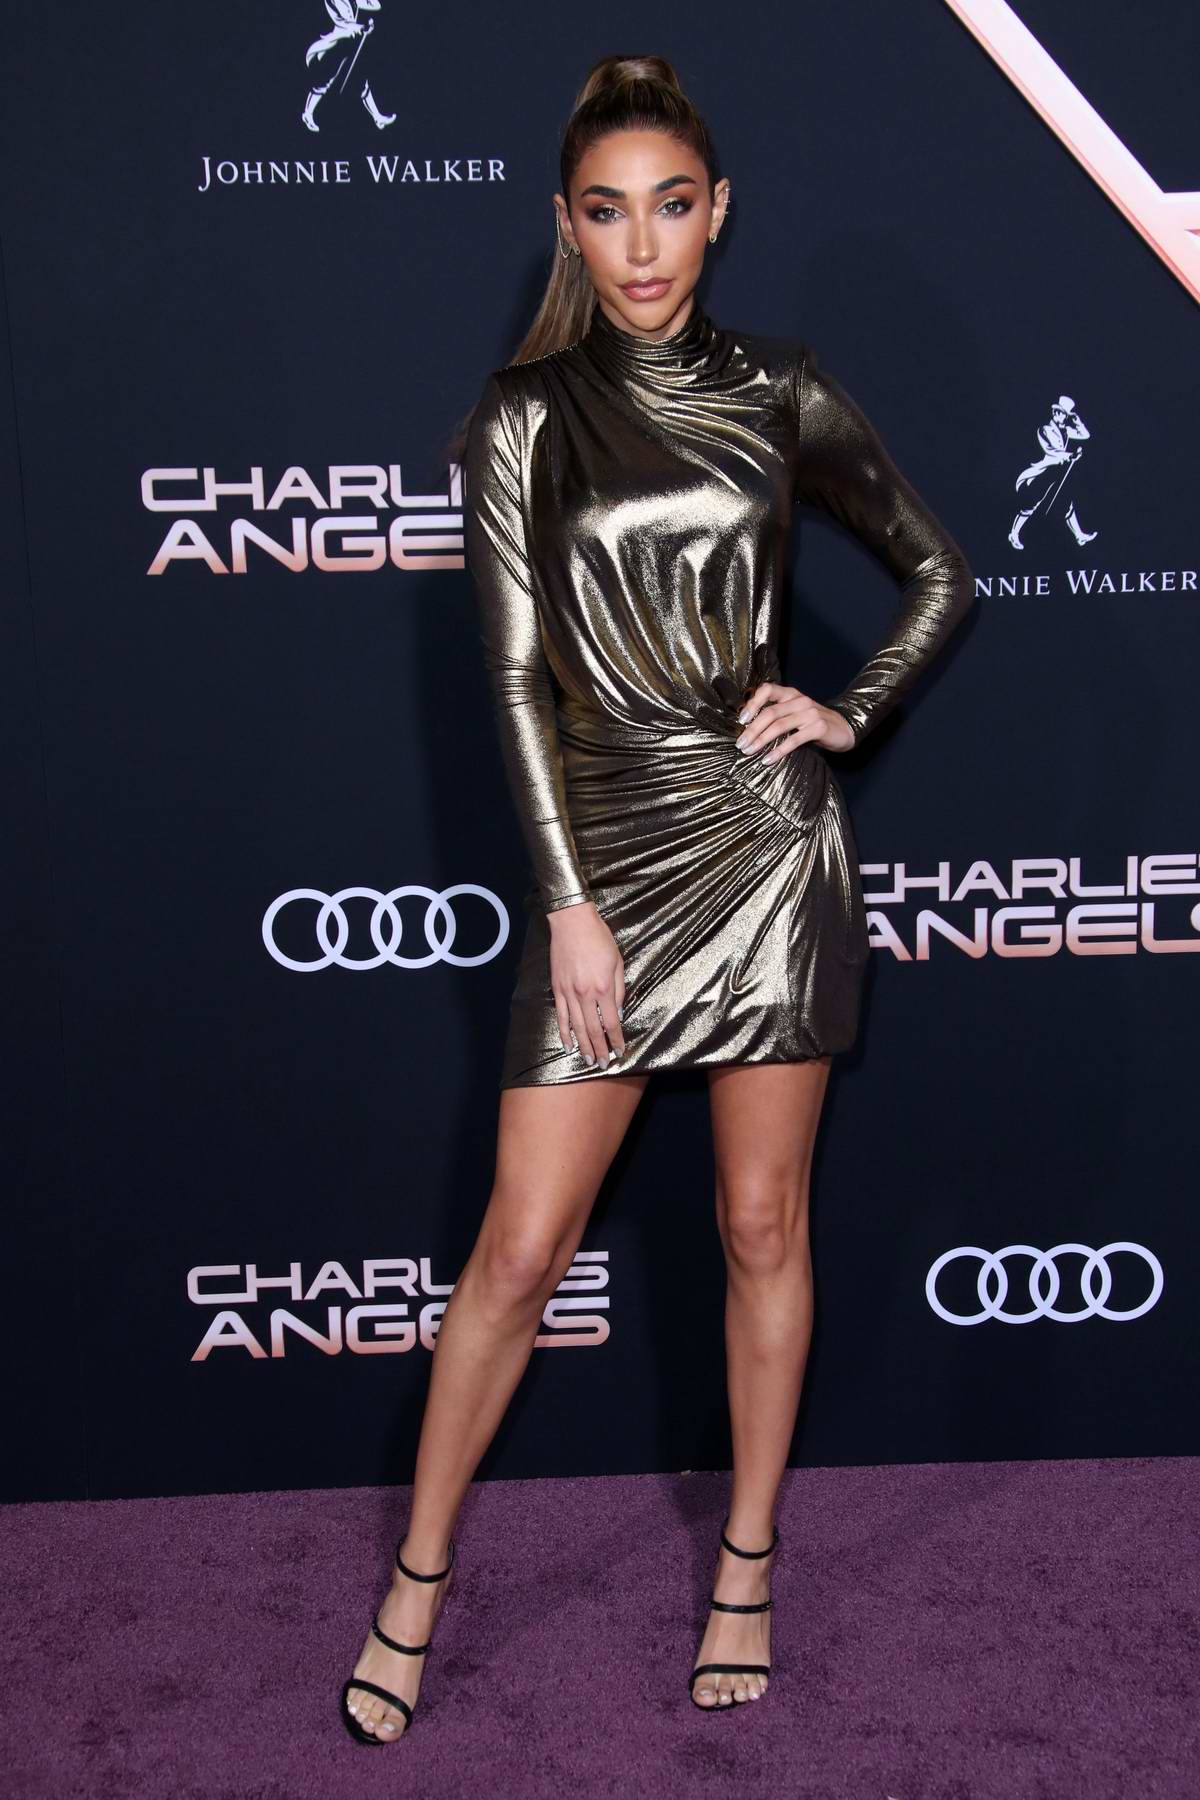 Chantel Jeffries attends the Premiere of 'Charlie's Angels' at Westwood Regency Theater in Los Angeles